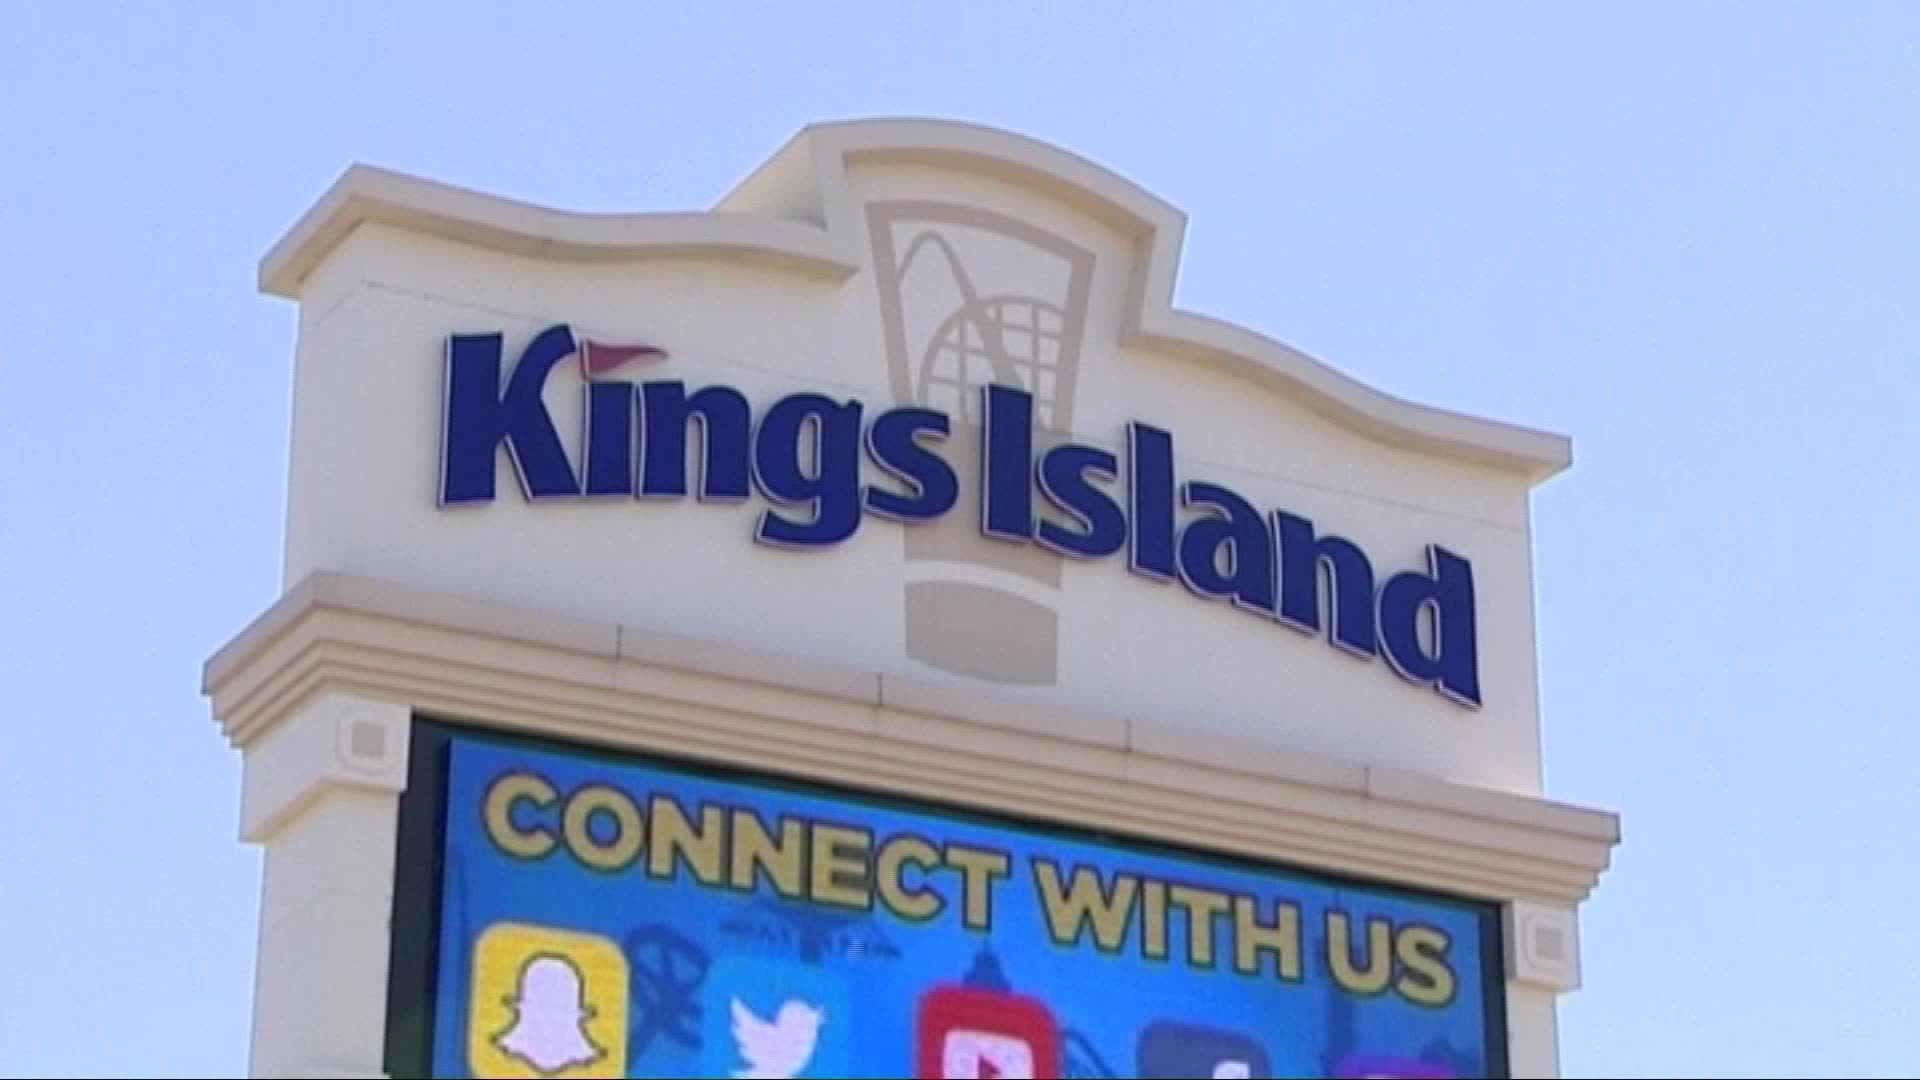 Kings_Island_offering_teachers_free_admi_0_20180820155657